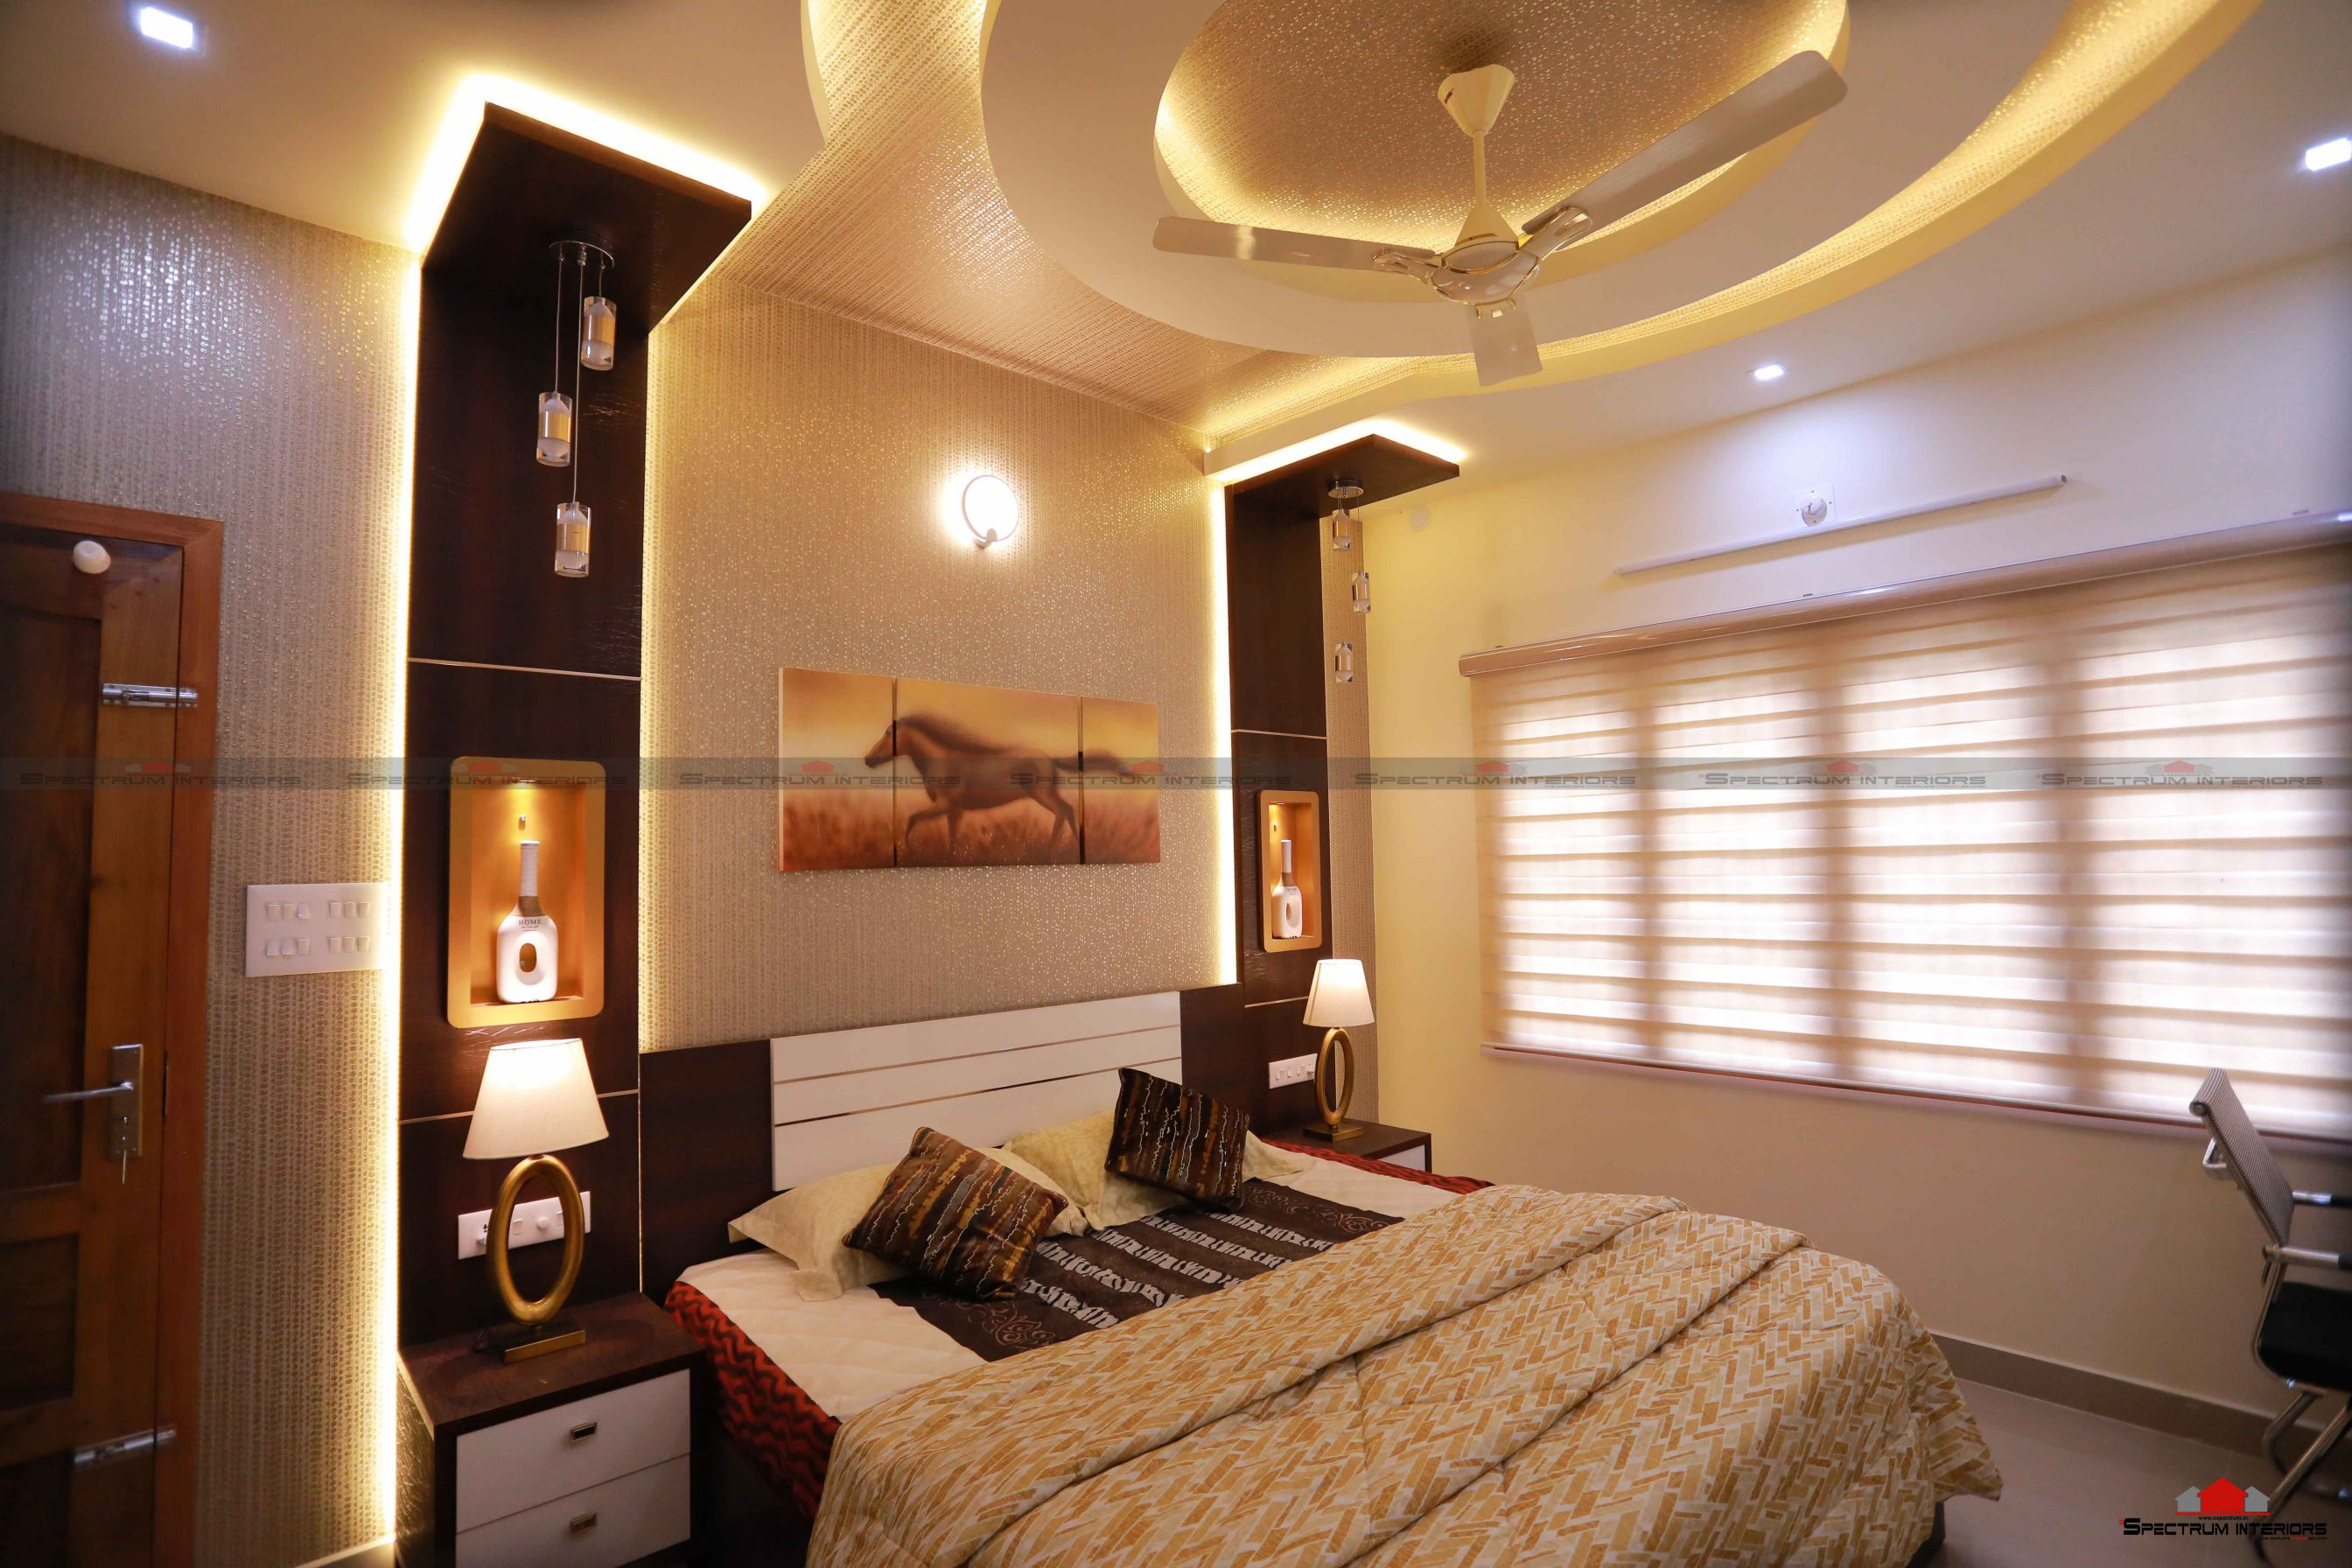 Enchanting Interior Design Walls And Ceiling Of In Kerala Acnn Decor